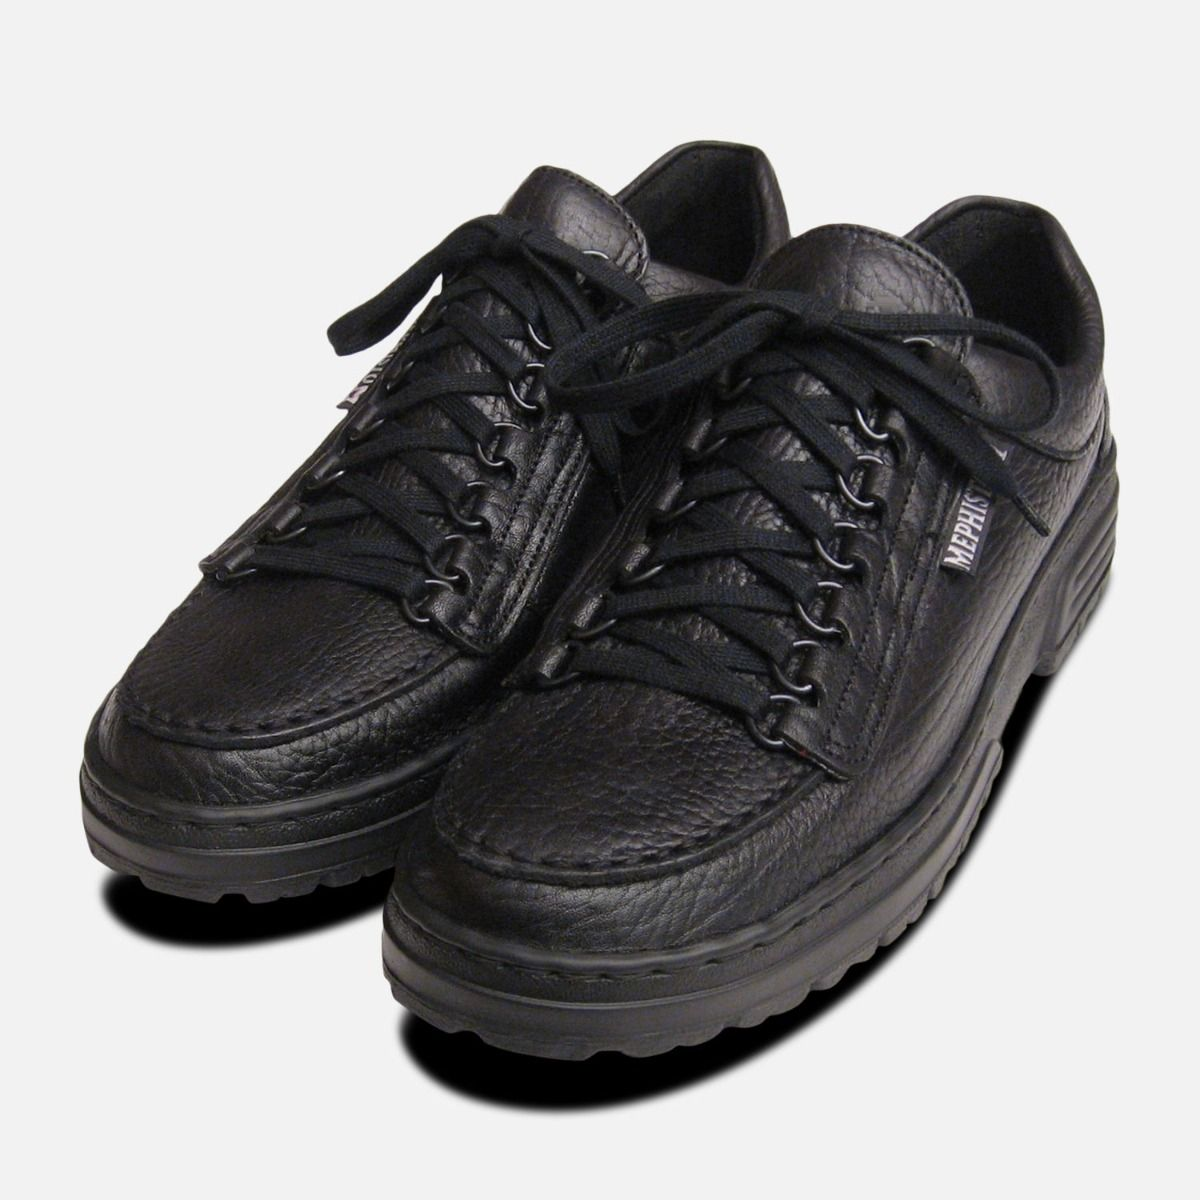 Mens Mephisto Shoes Rainbow in Black